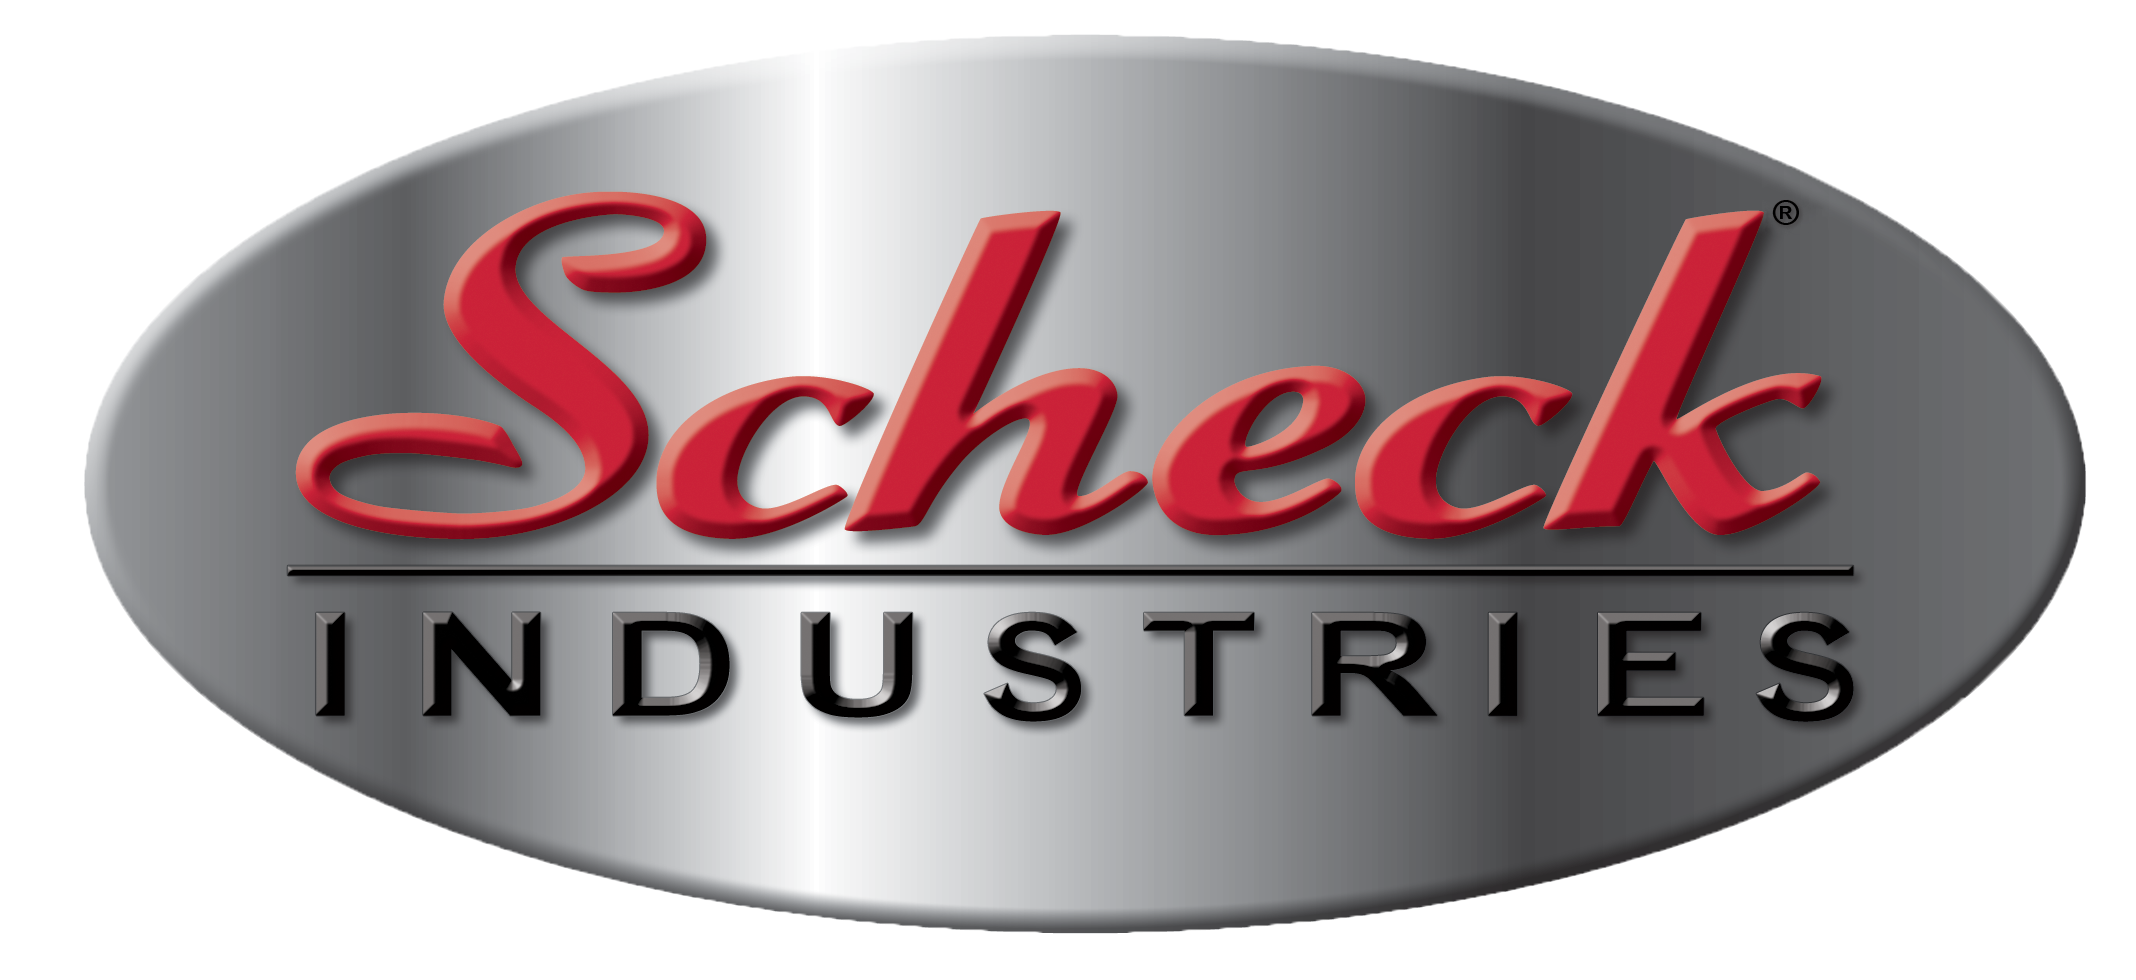 Scheck Industries